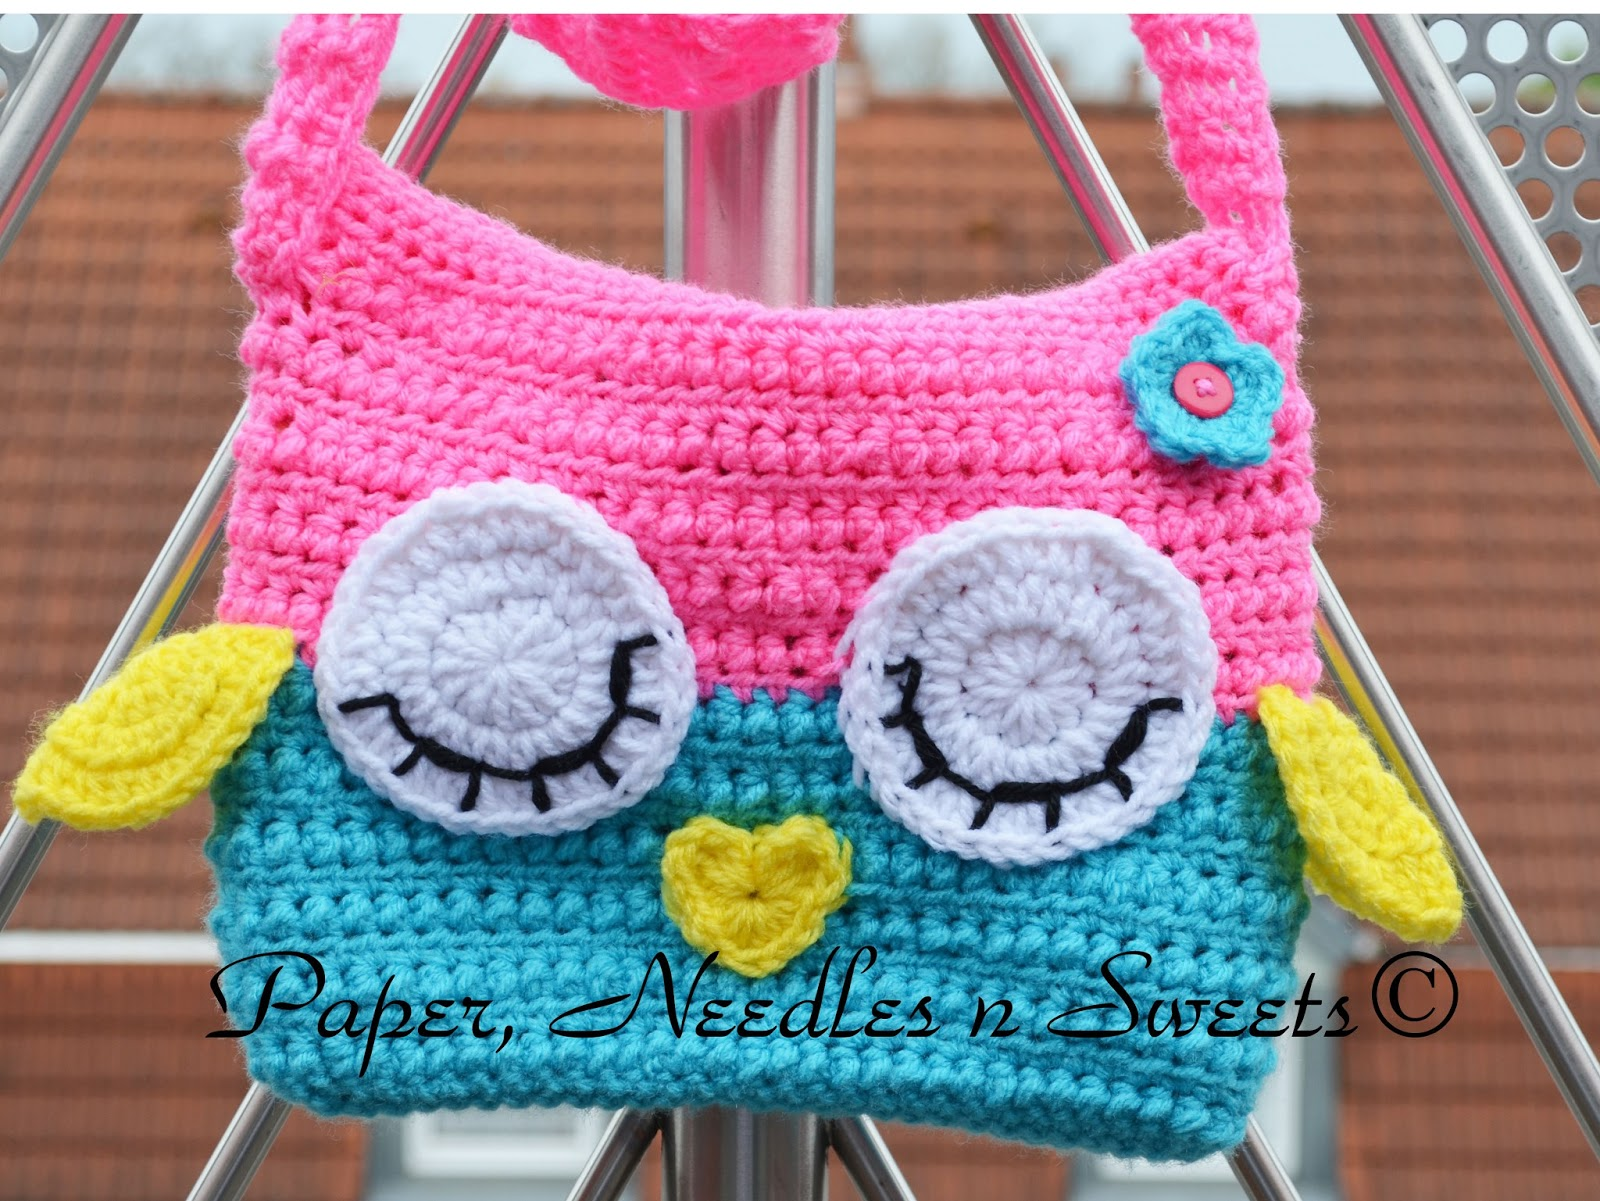 Crochet Owl Bag Pattern Free : Paper, Needles n Sweets : Sleepy Owl Ipad Crochet Bag